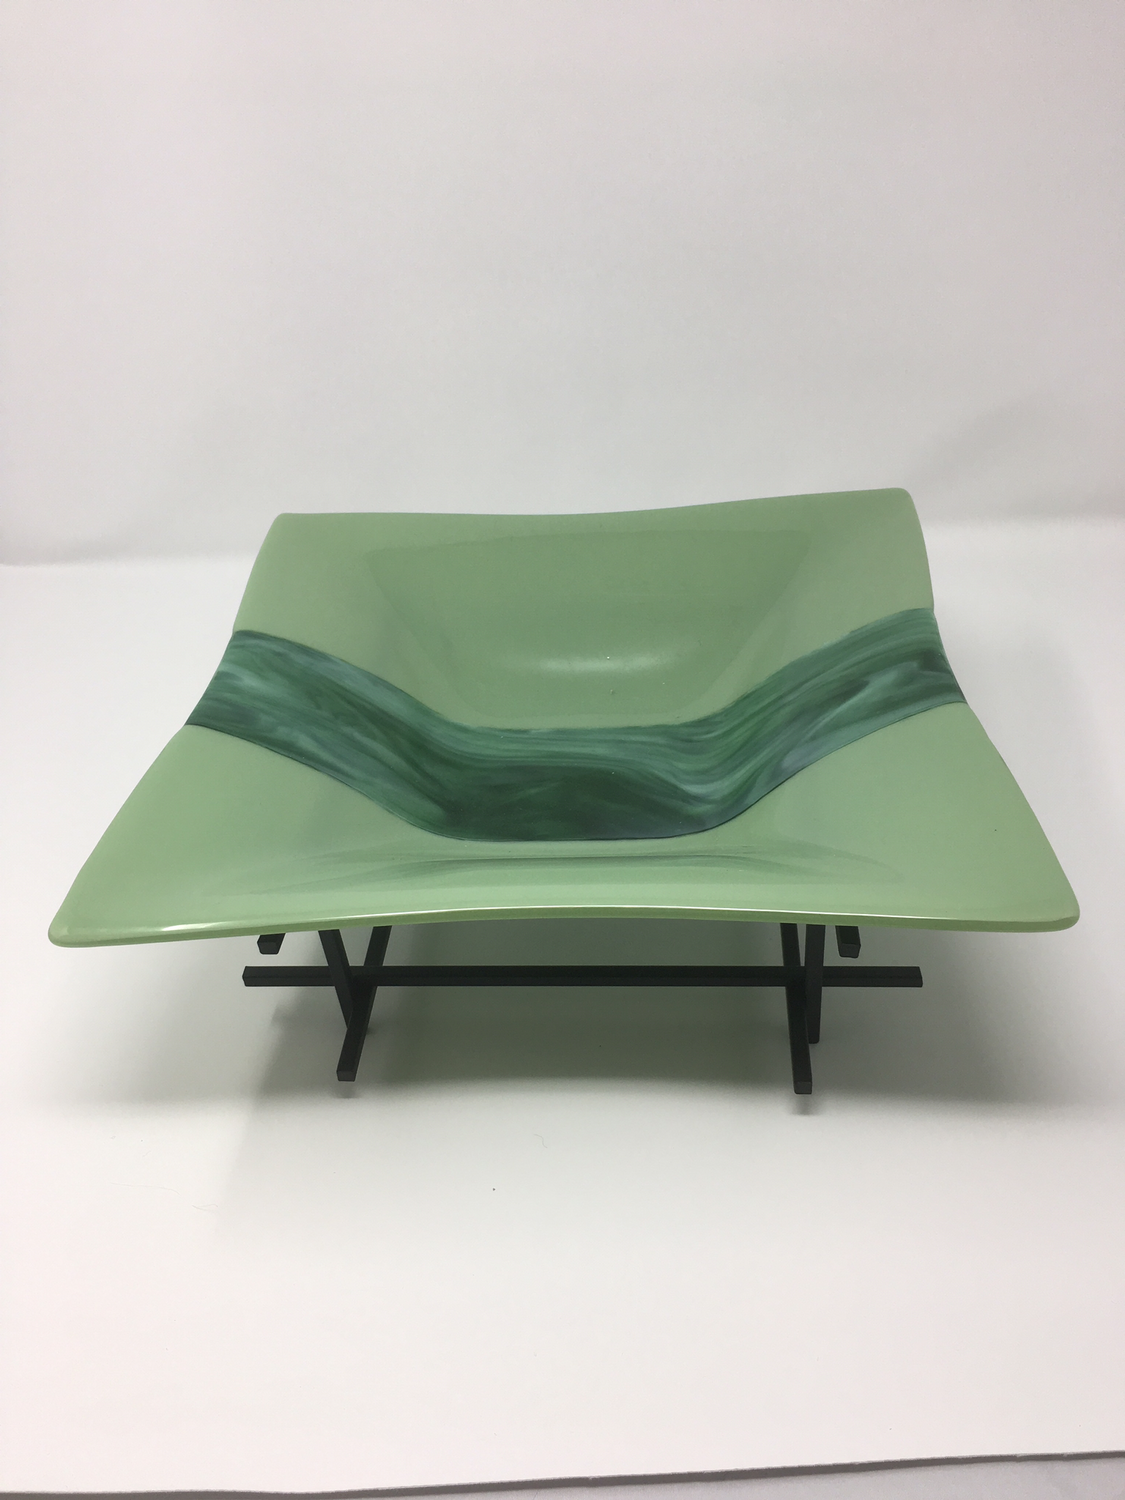 12 x 12 Celadon Green Bowl